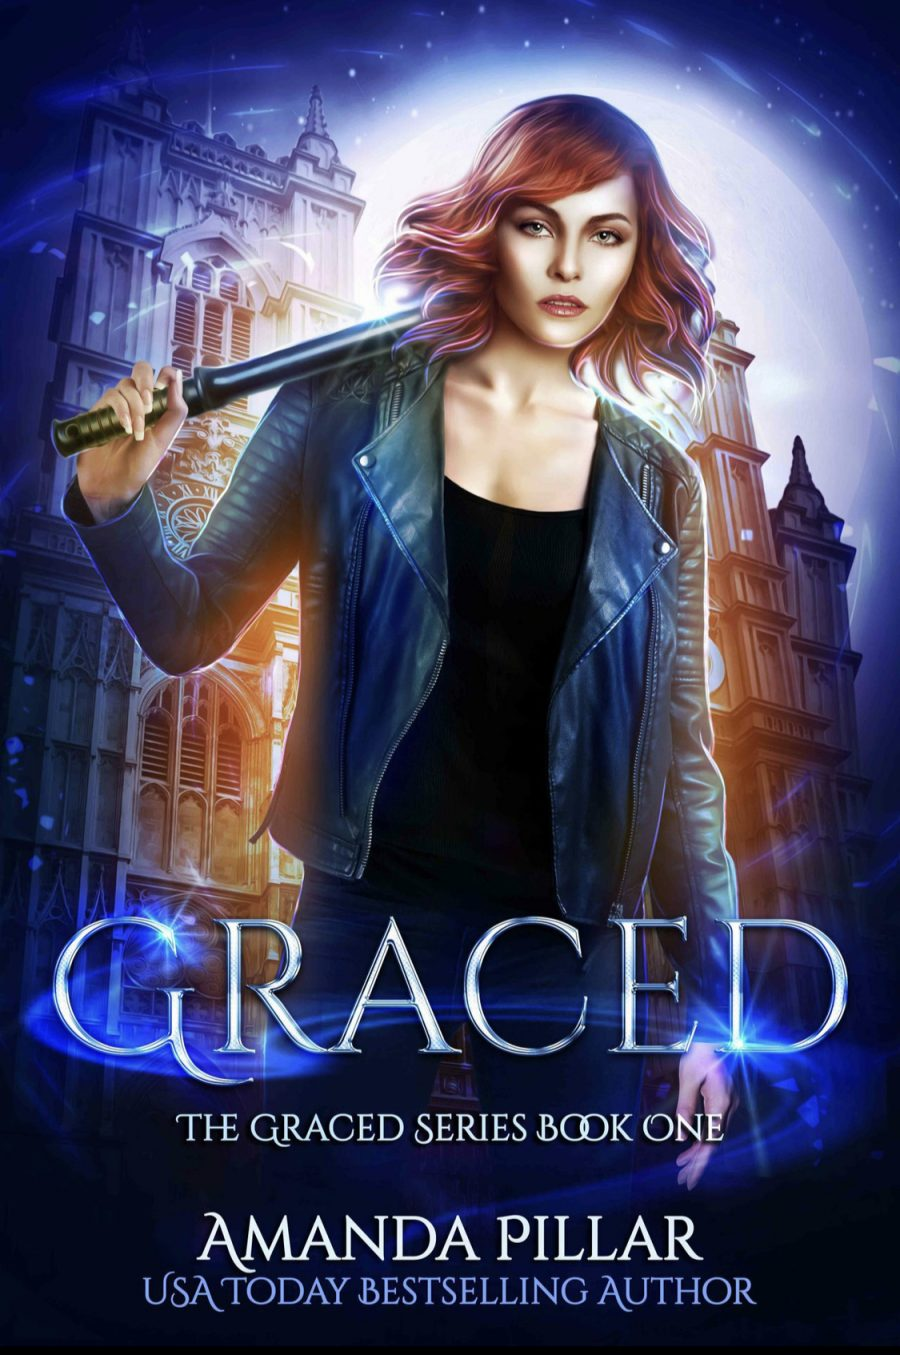 Graced by Amanda Pillar - A Book Review #BookReview #Review #OlderRelease #UrbanFantasy #Series #Vampires #Magic #Shifters #Complex